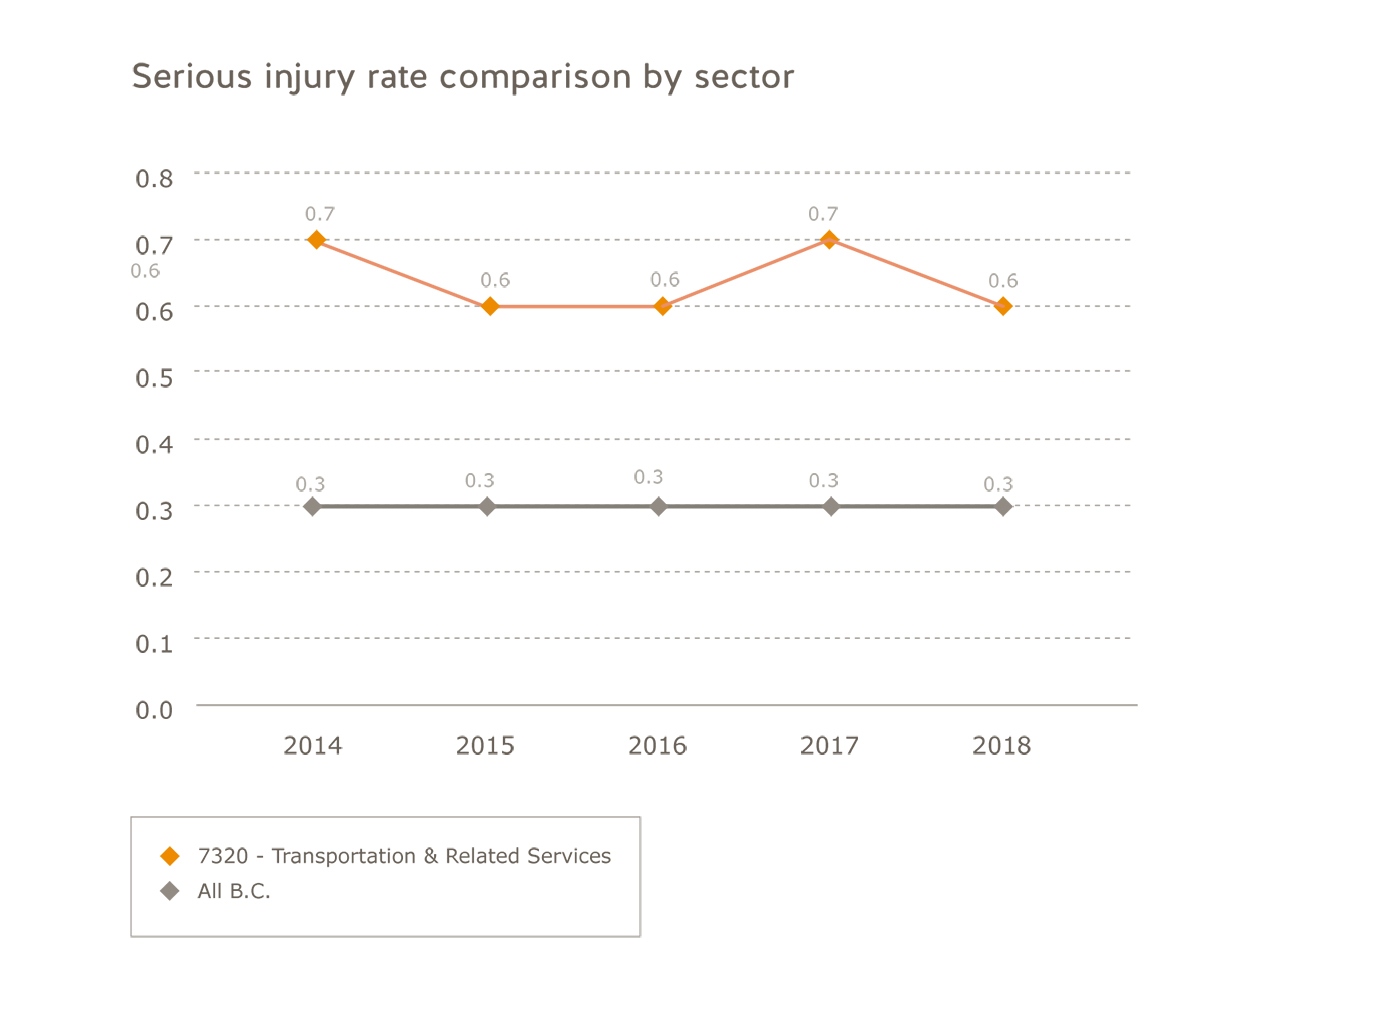 Transportation industry serious injury rate comparison by sector for 2014 to 2018. Transportation: 2014=0.7; 2015=0.5; 2016=0.6; 2017=0.7; 2018=0.6. All B.C.: 2014=0.3; 2015=0.3; 2016=0.3; 2017=0.3; 2018=0.3